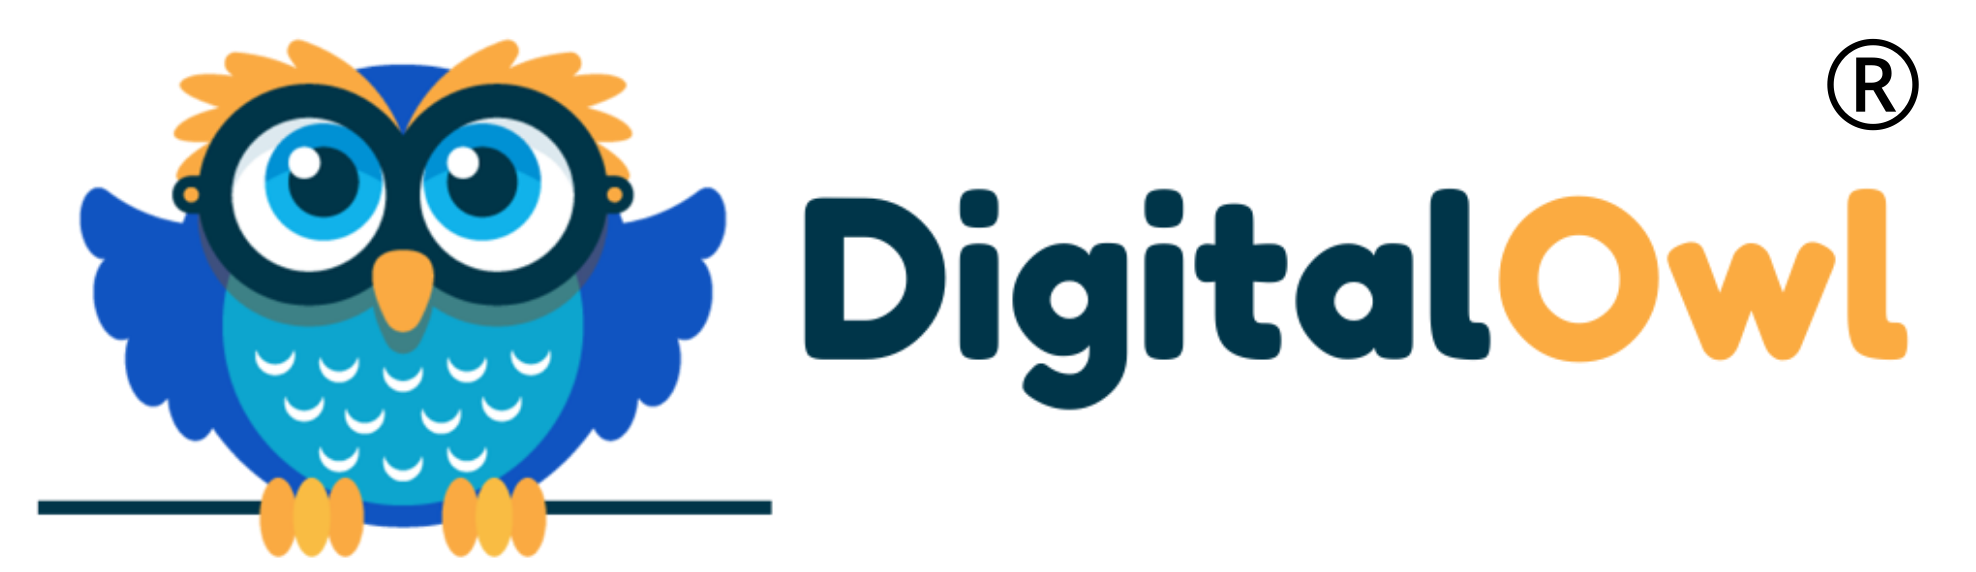 Digital Owl | Digital Marketing Company in Mumbai